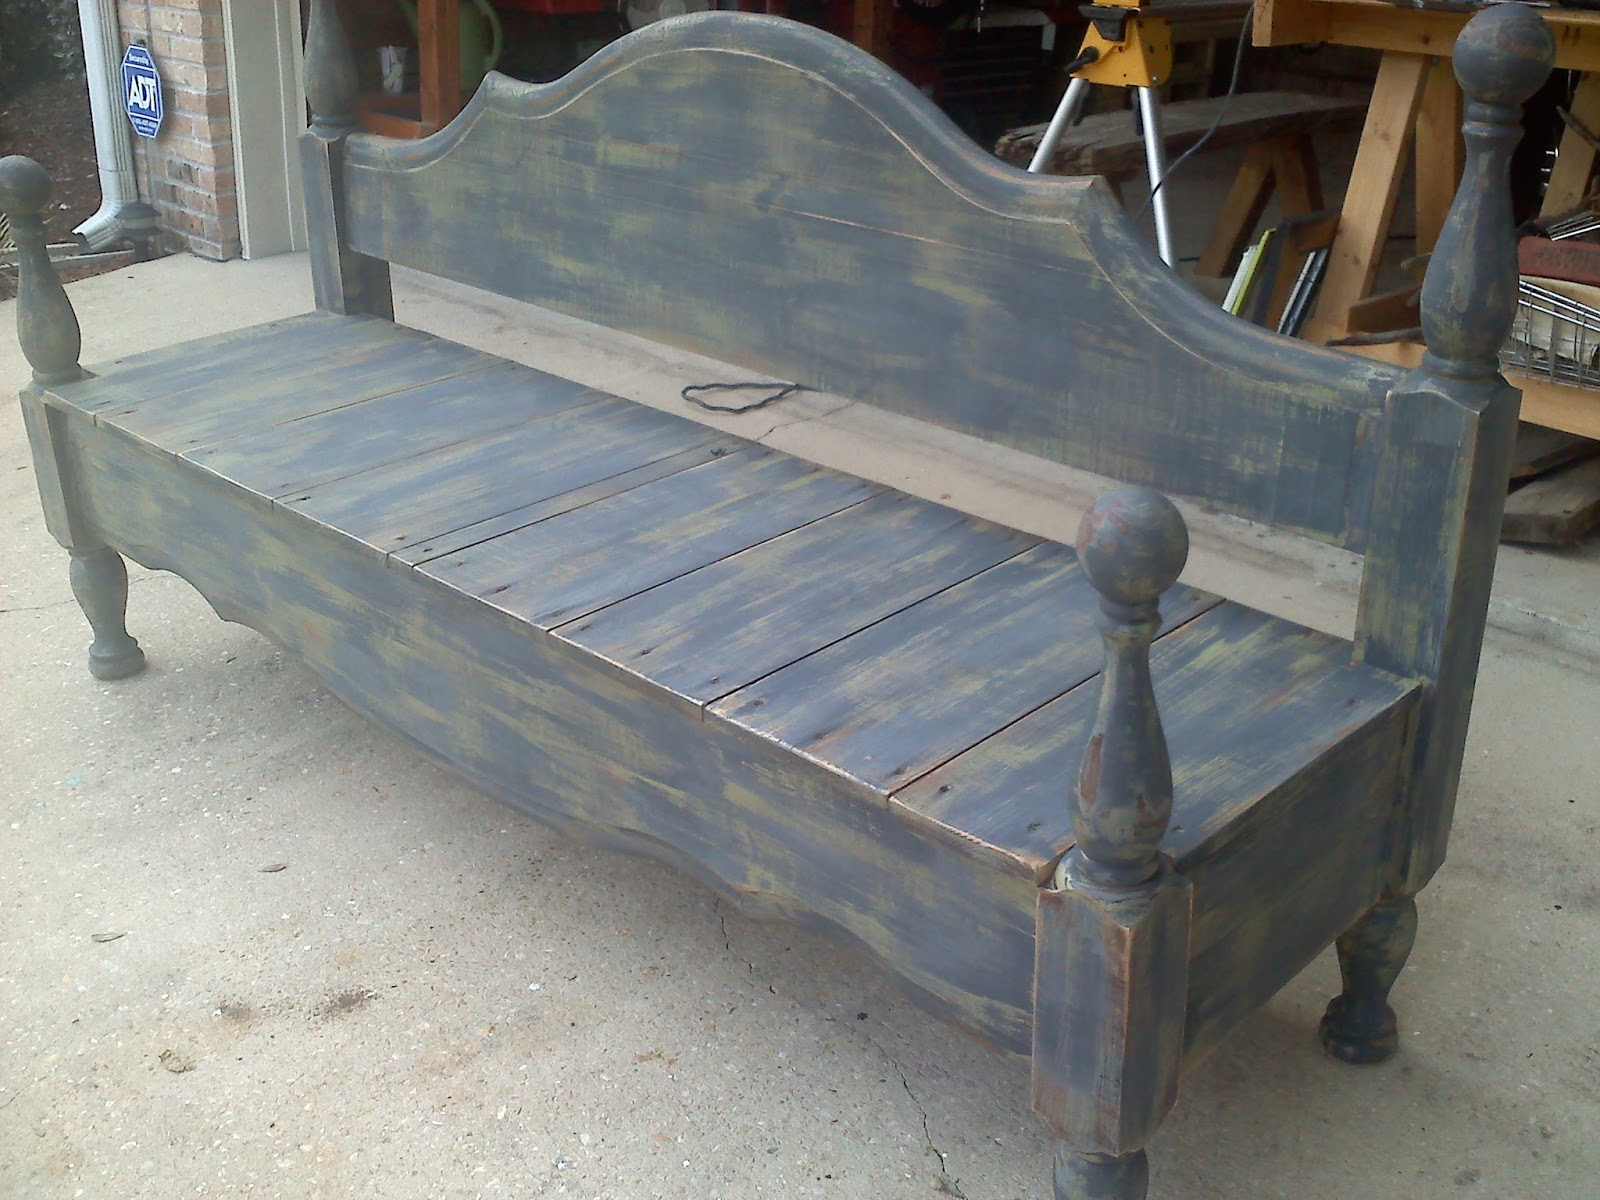 The JUNKtion: Headboard / Footboard Bench